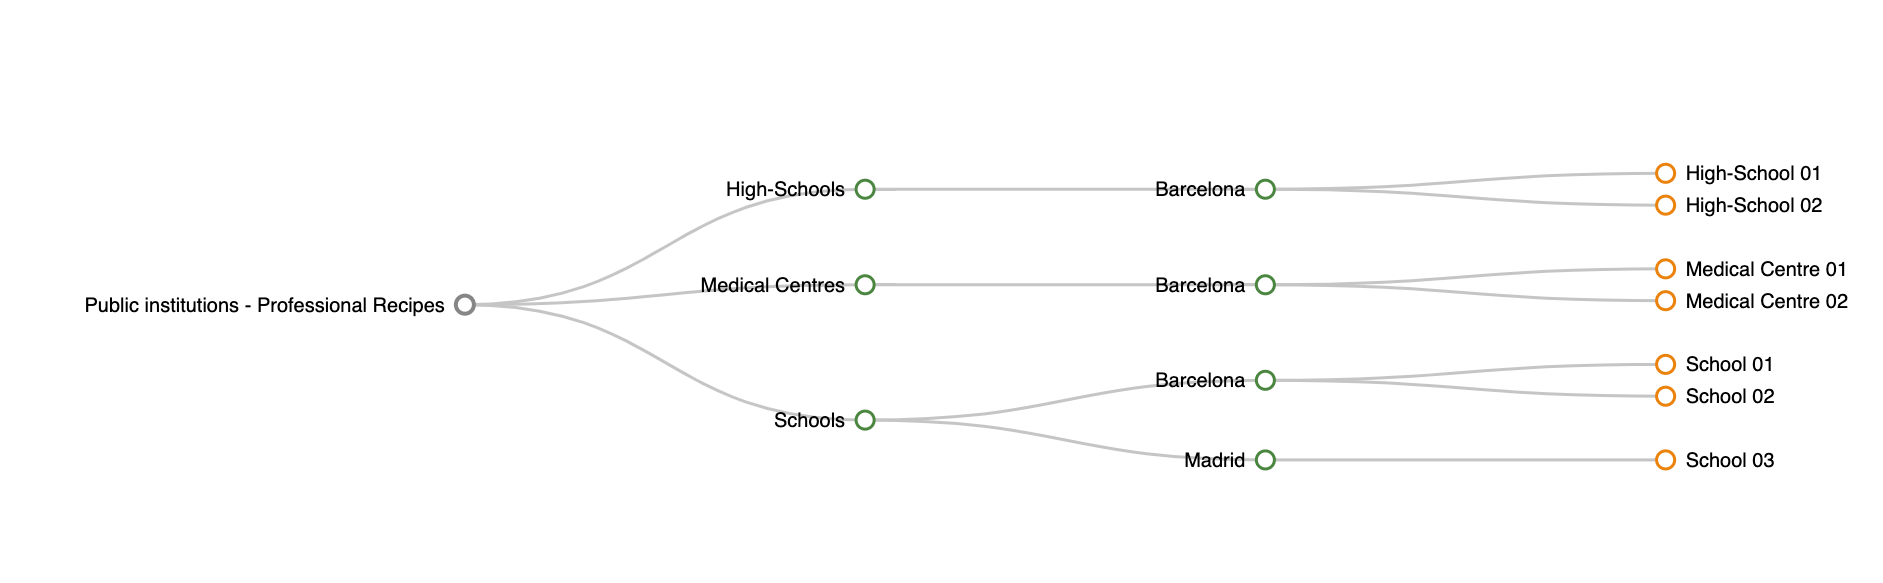 dexma-Understandingthehierarchyoflocations_04.png